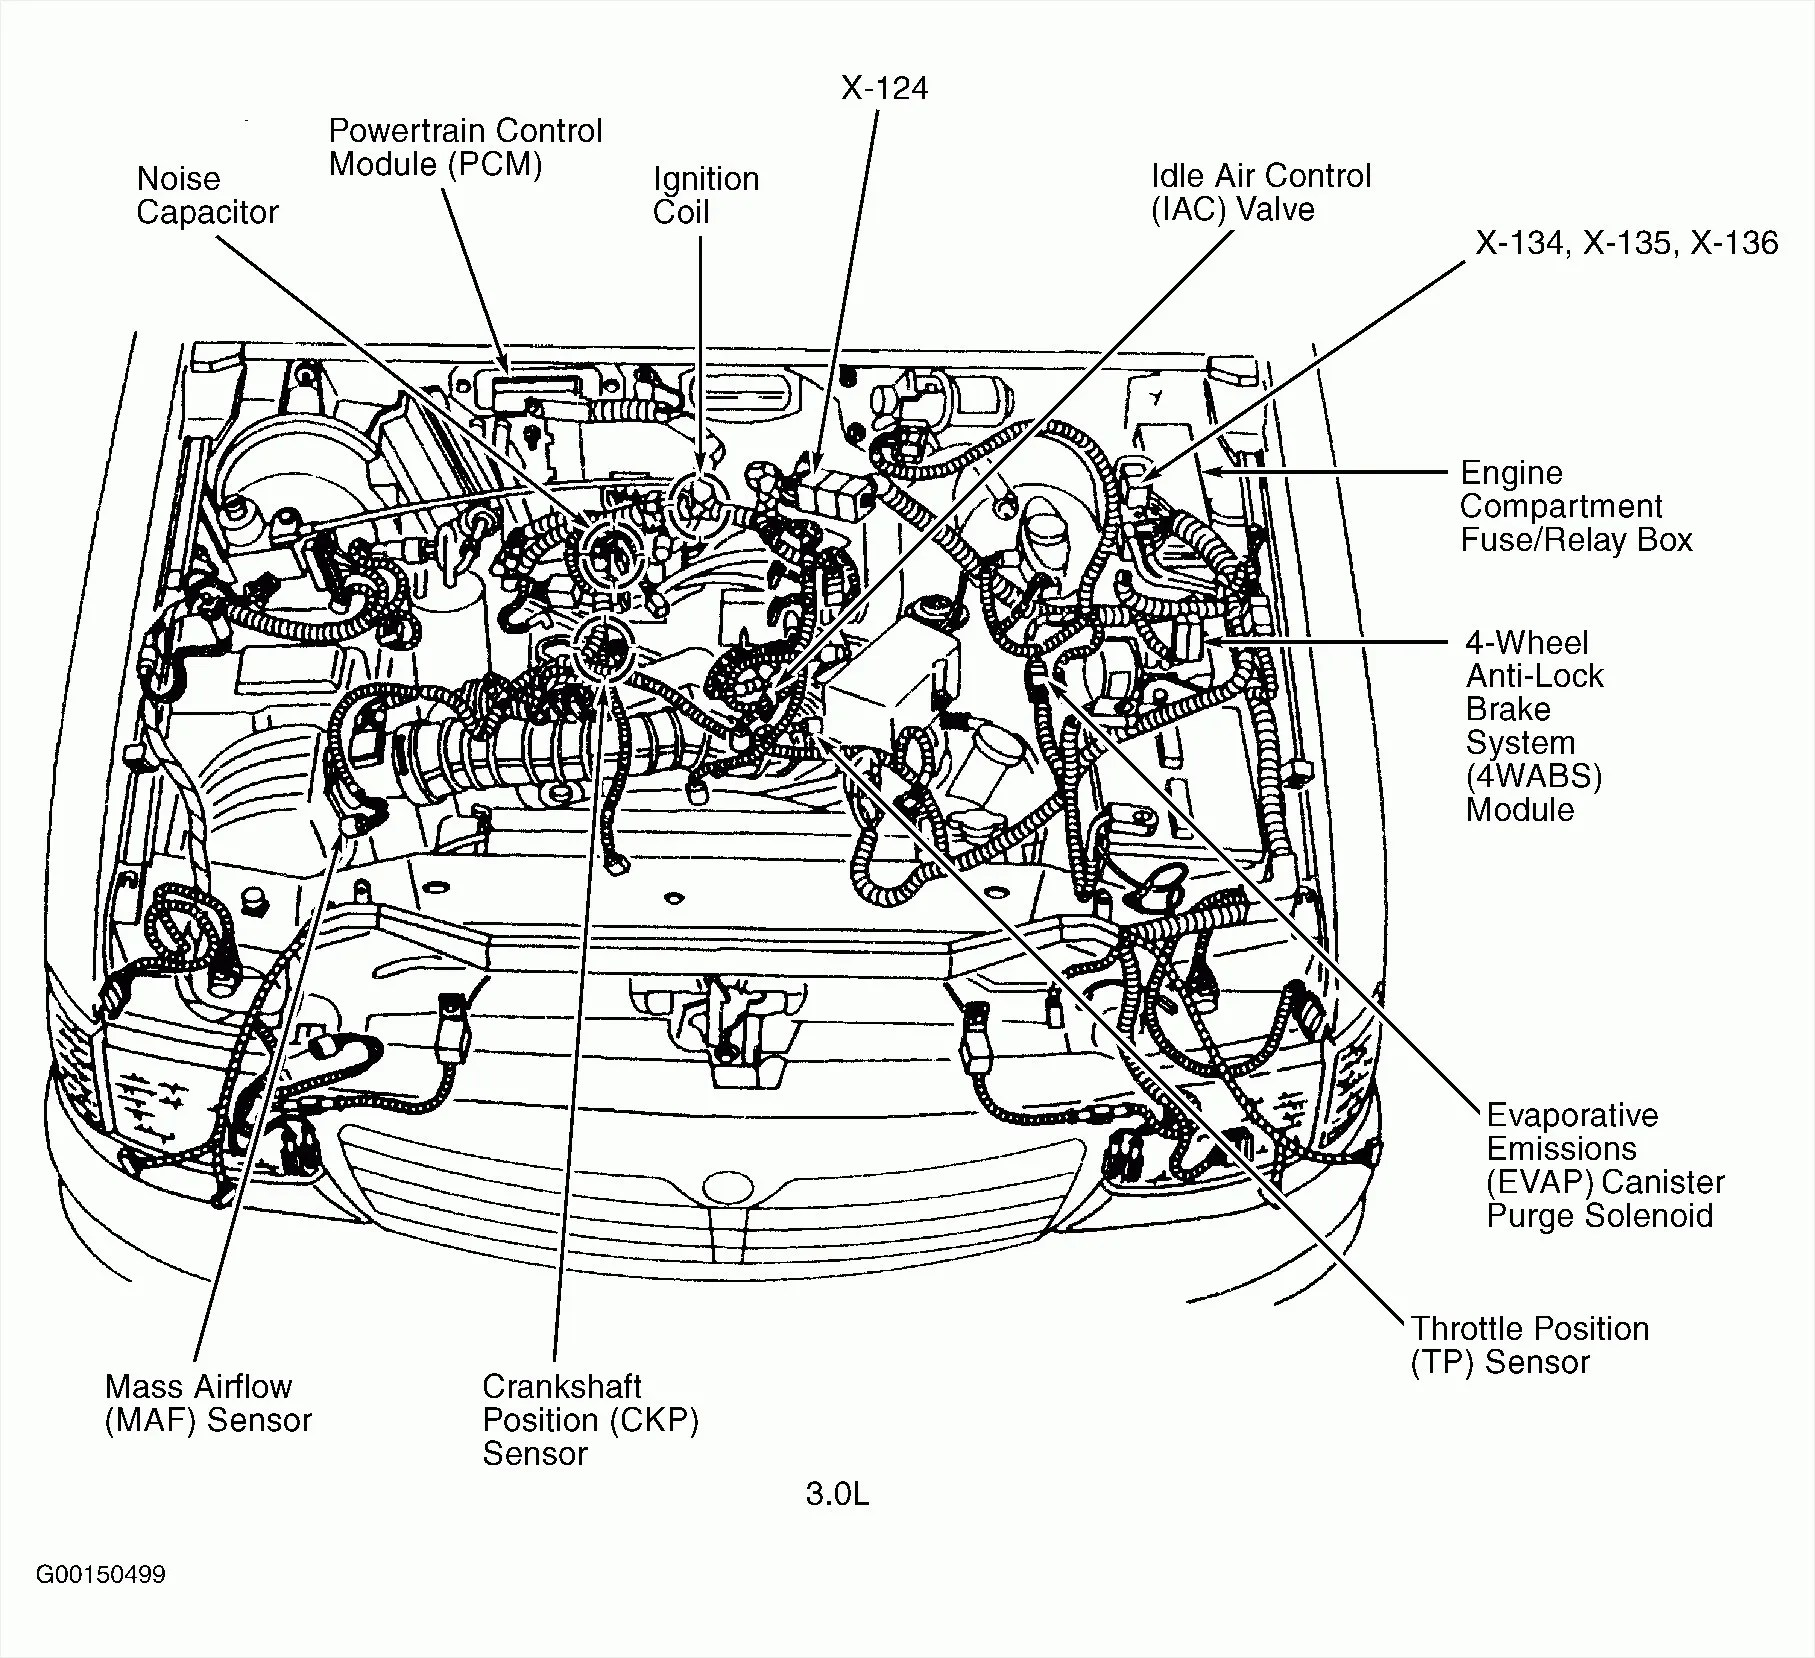 hight resolution of cadillac 6 0 engine diagram wiring diagram value cadillac catera 3 0 engine diagram